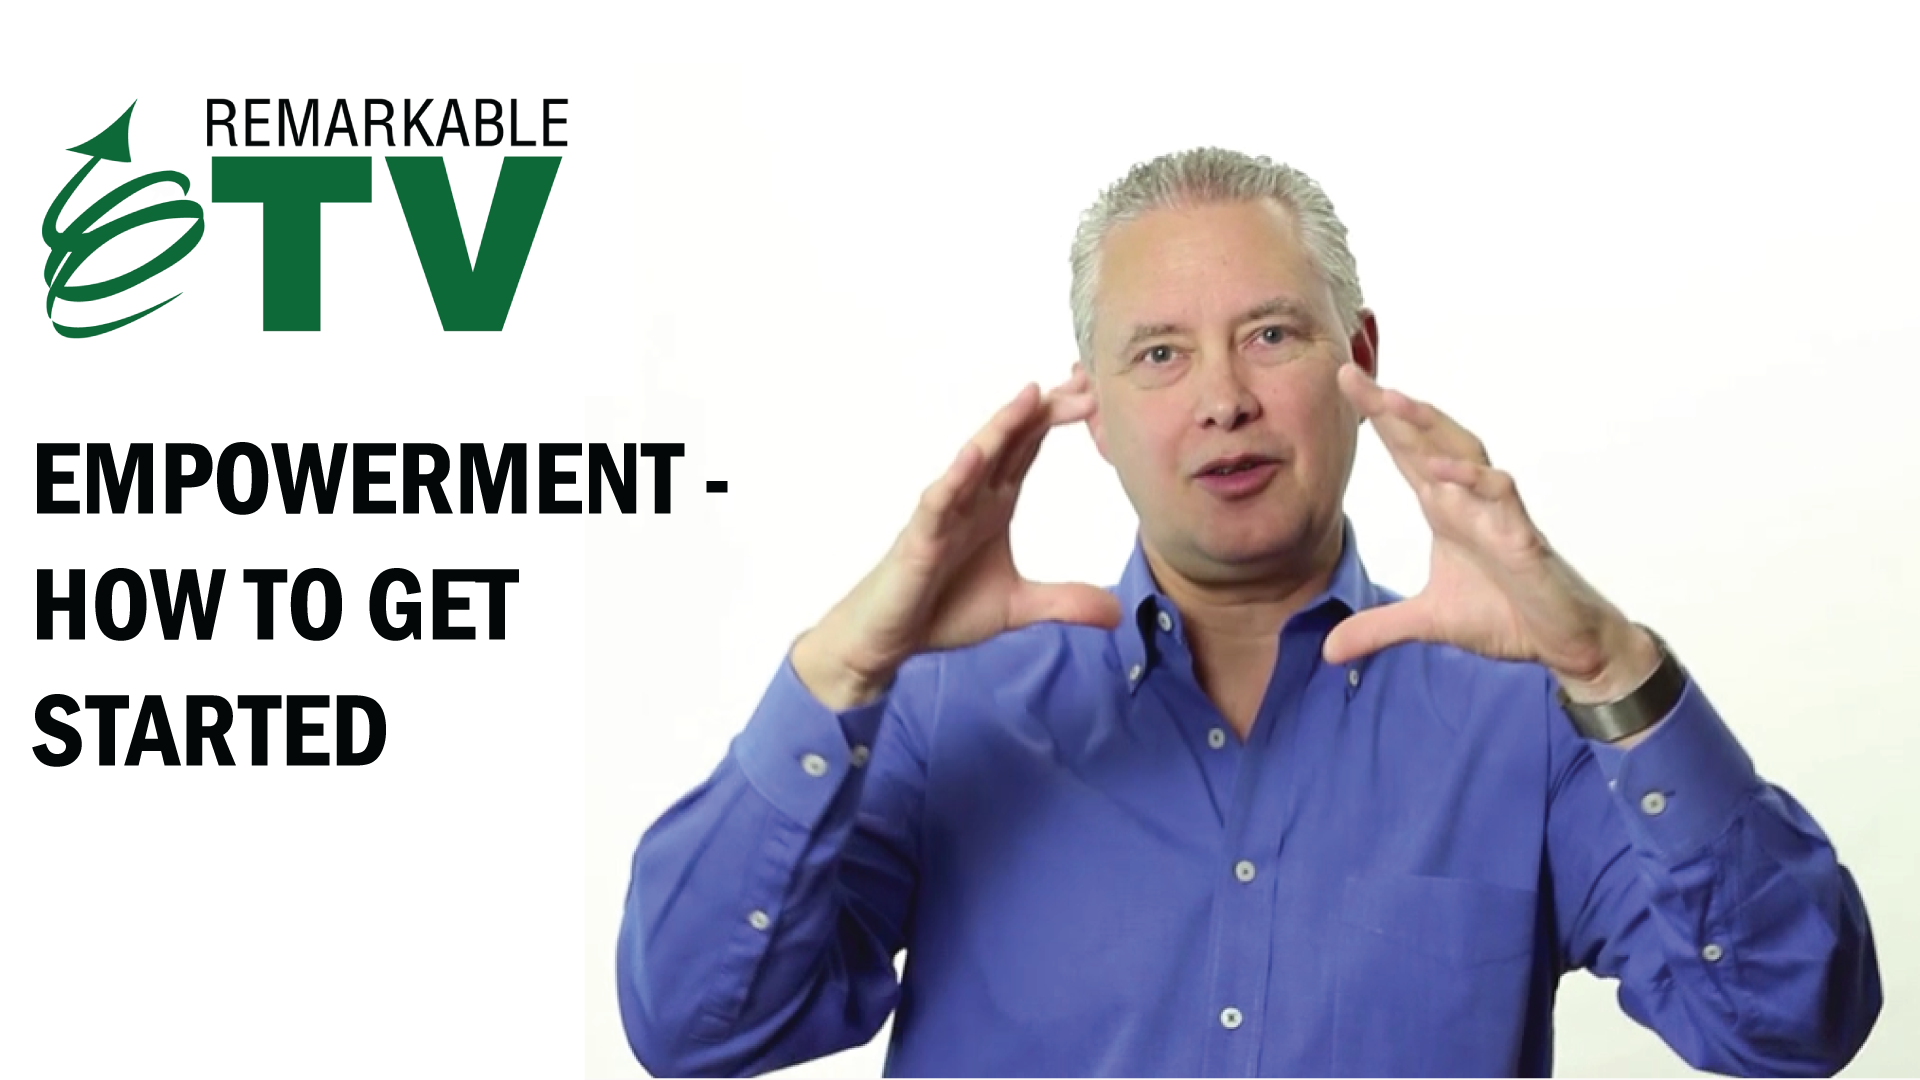 Empowerment is one of those holy grail words in my business and it's one that everyone says they want. They want an empowered team. But how do you get there? | Empowerment - How to Get Started | Remarkable TV with Kevin Eikenberry